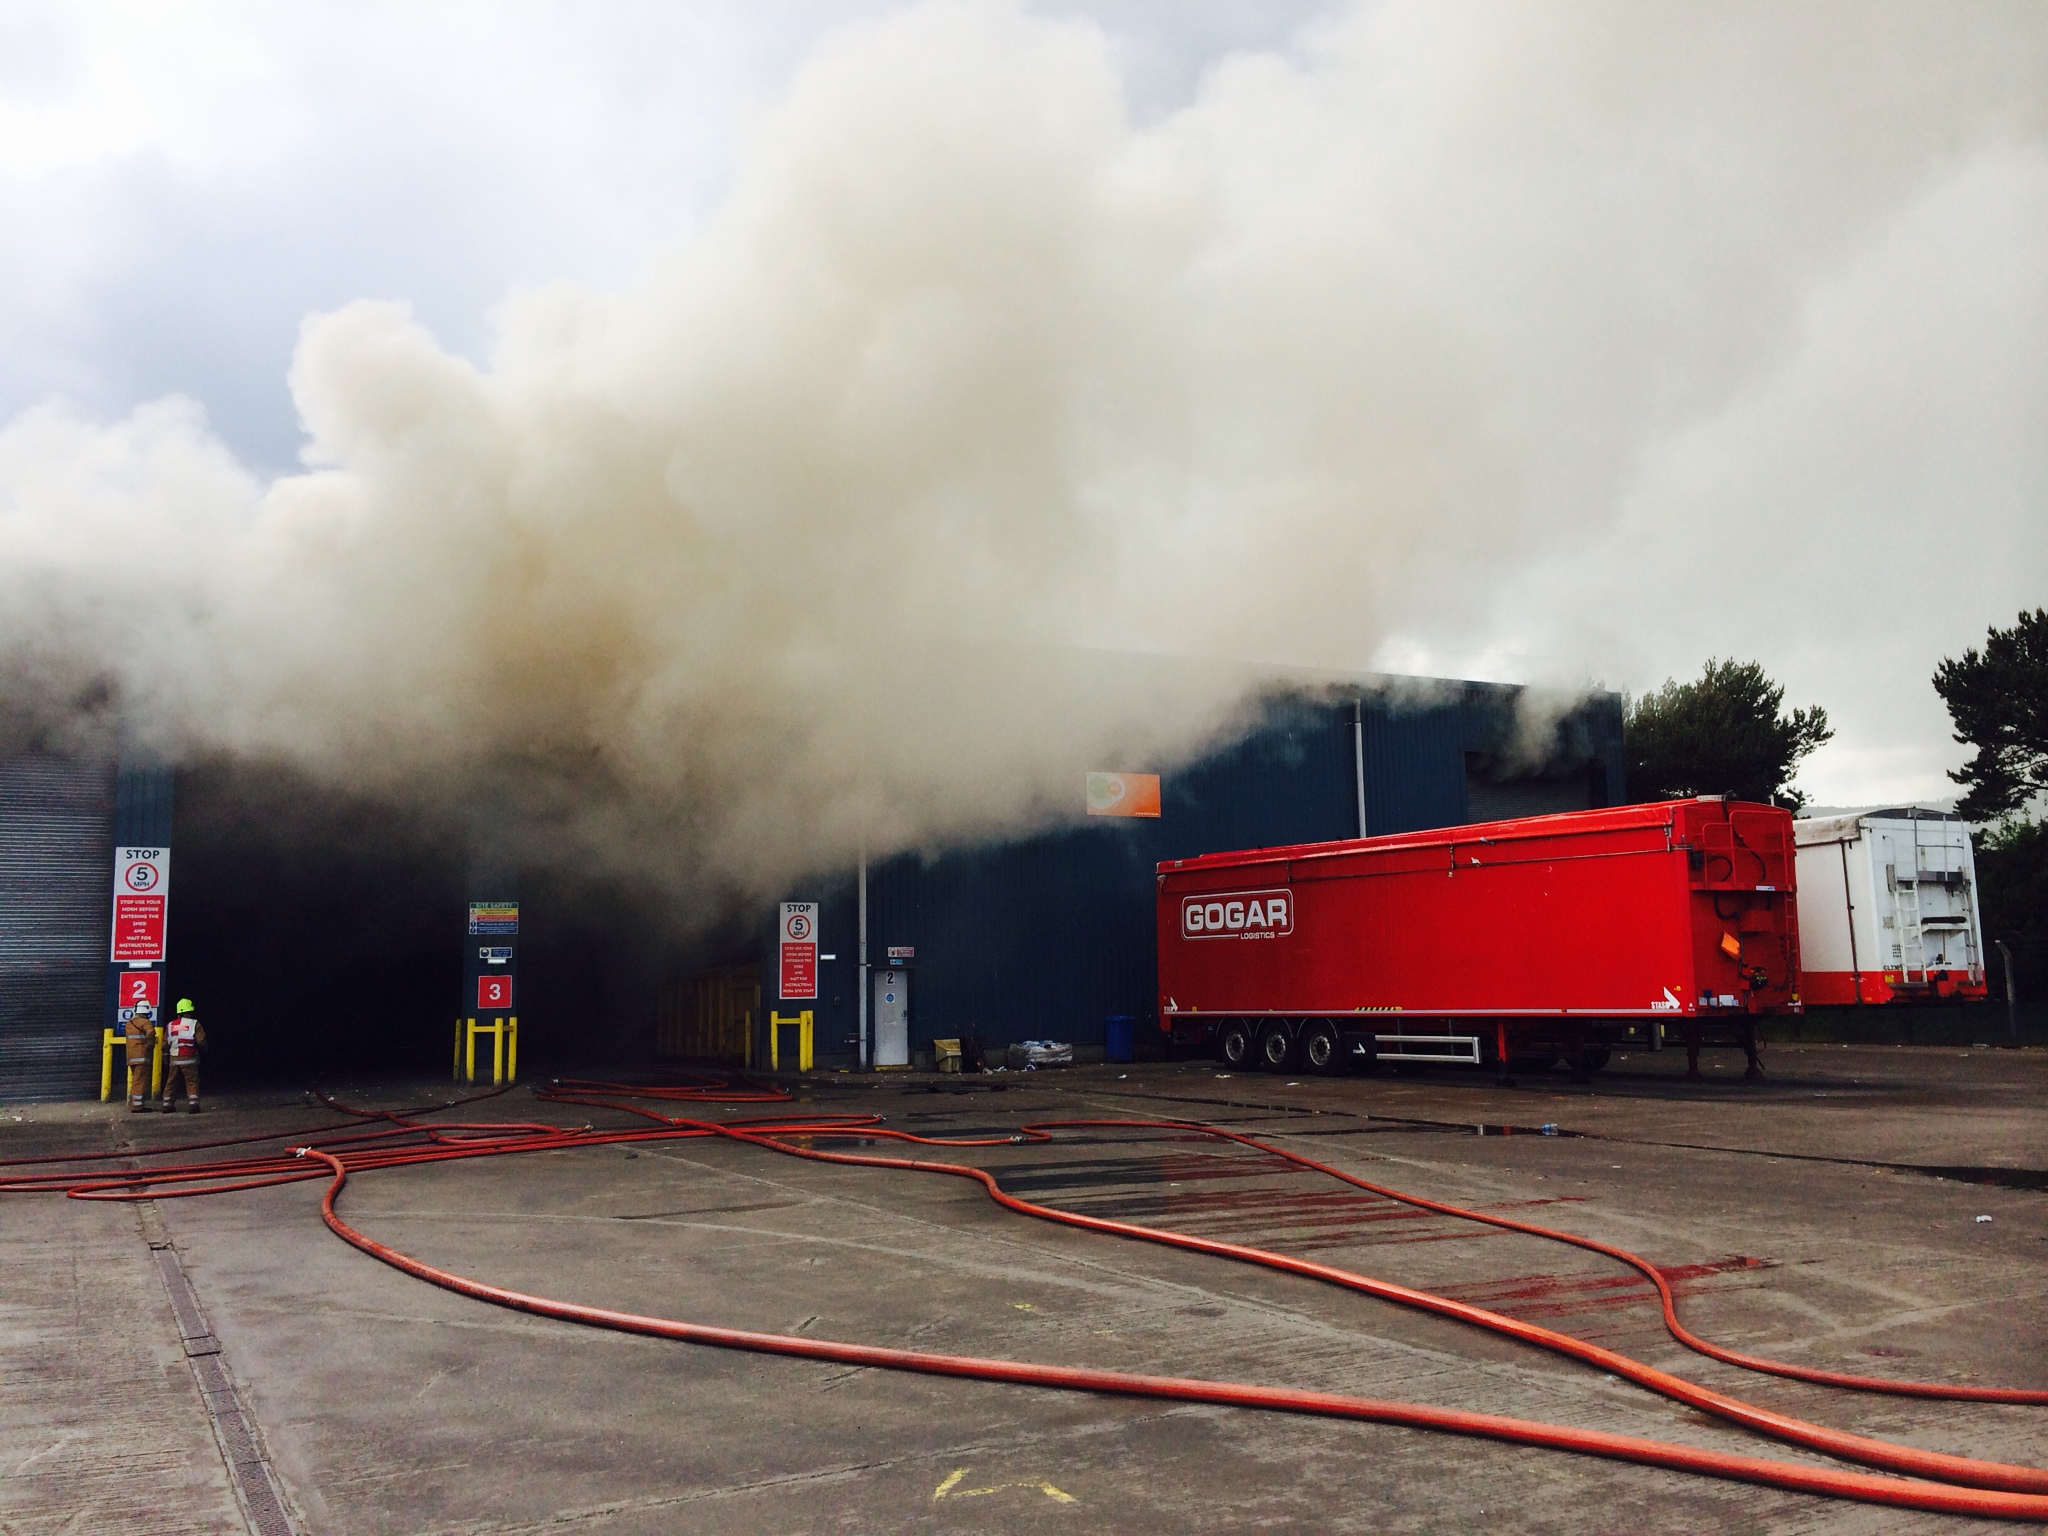 SFRS successfully tackled recyling centre fire in Inverness last night